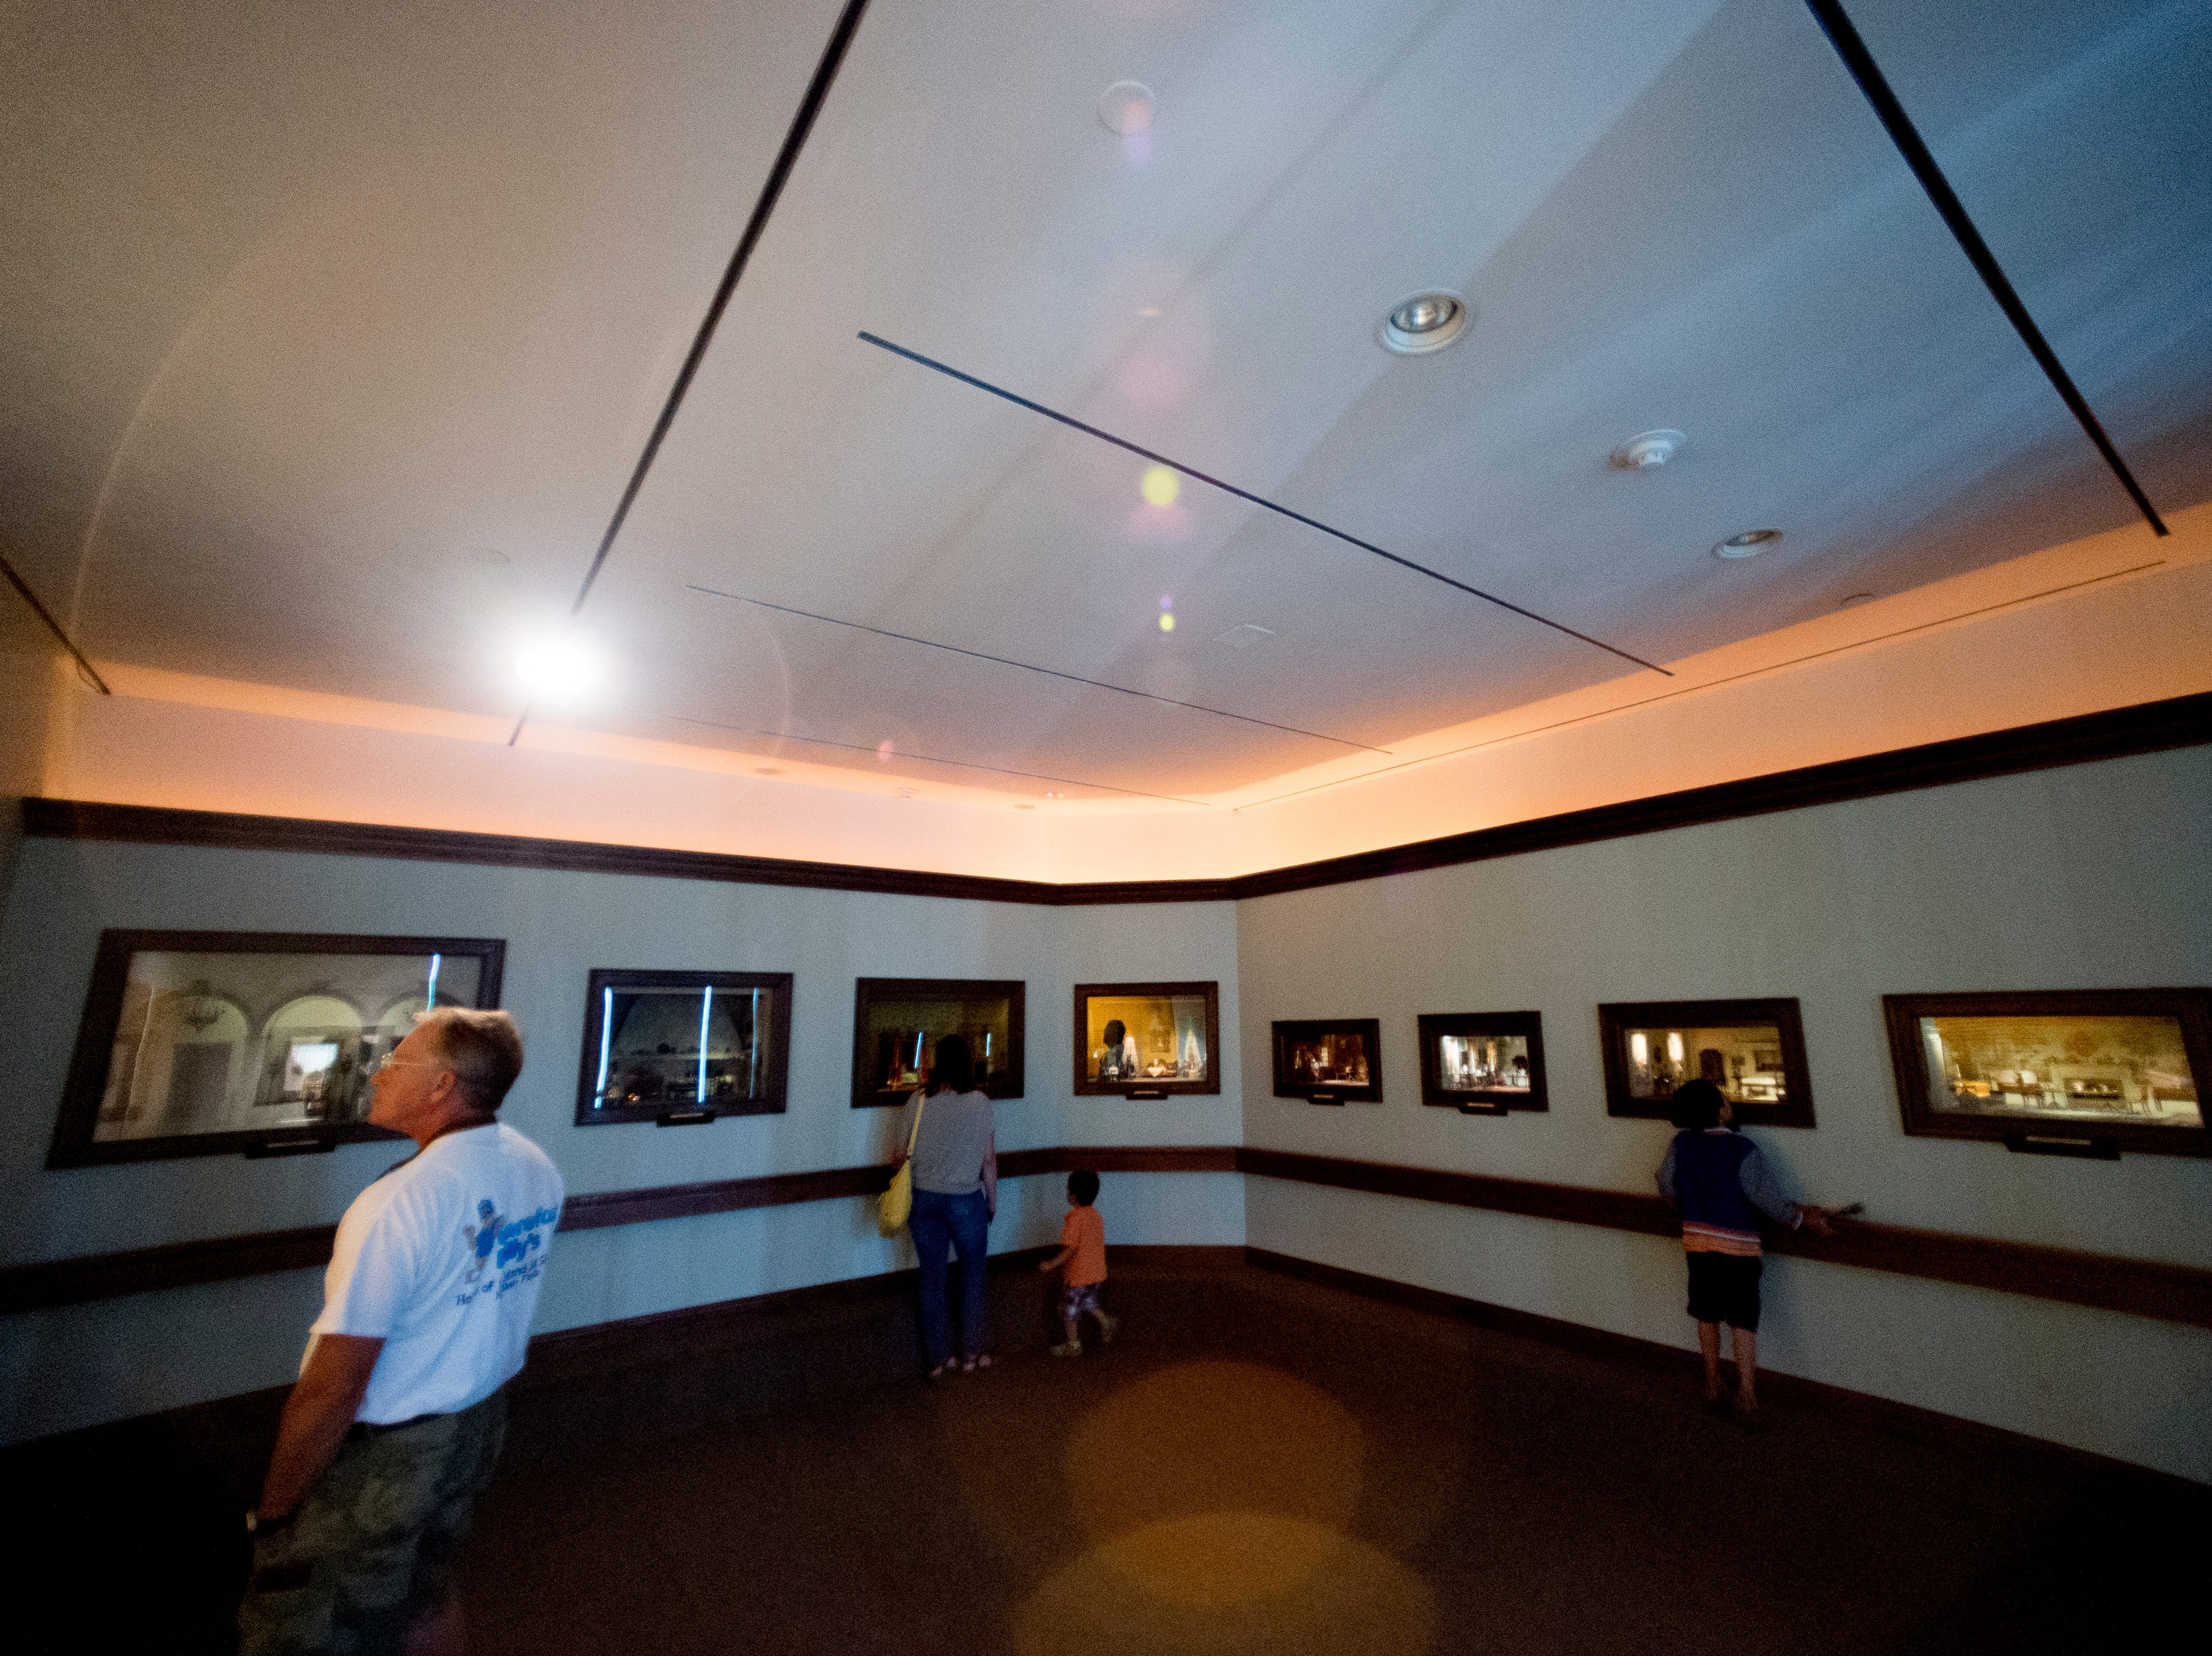 Visitors look at displays in the Thorne Room at the Knoxville Museum of Art in Knoxville, Tennessee on Tuesday, August 21, 2018. The nine miniature rooms were created in the 1930s and 40s by Mrs. James Ward Thorne to a scale of one inch to one foot.